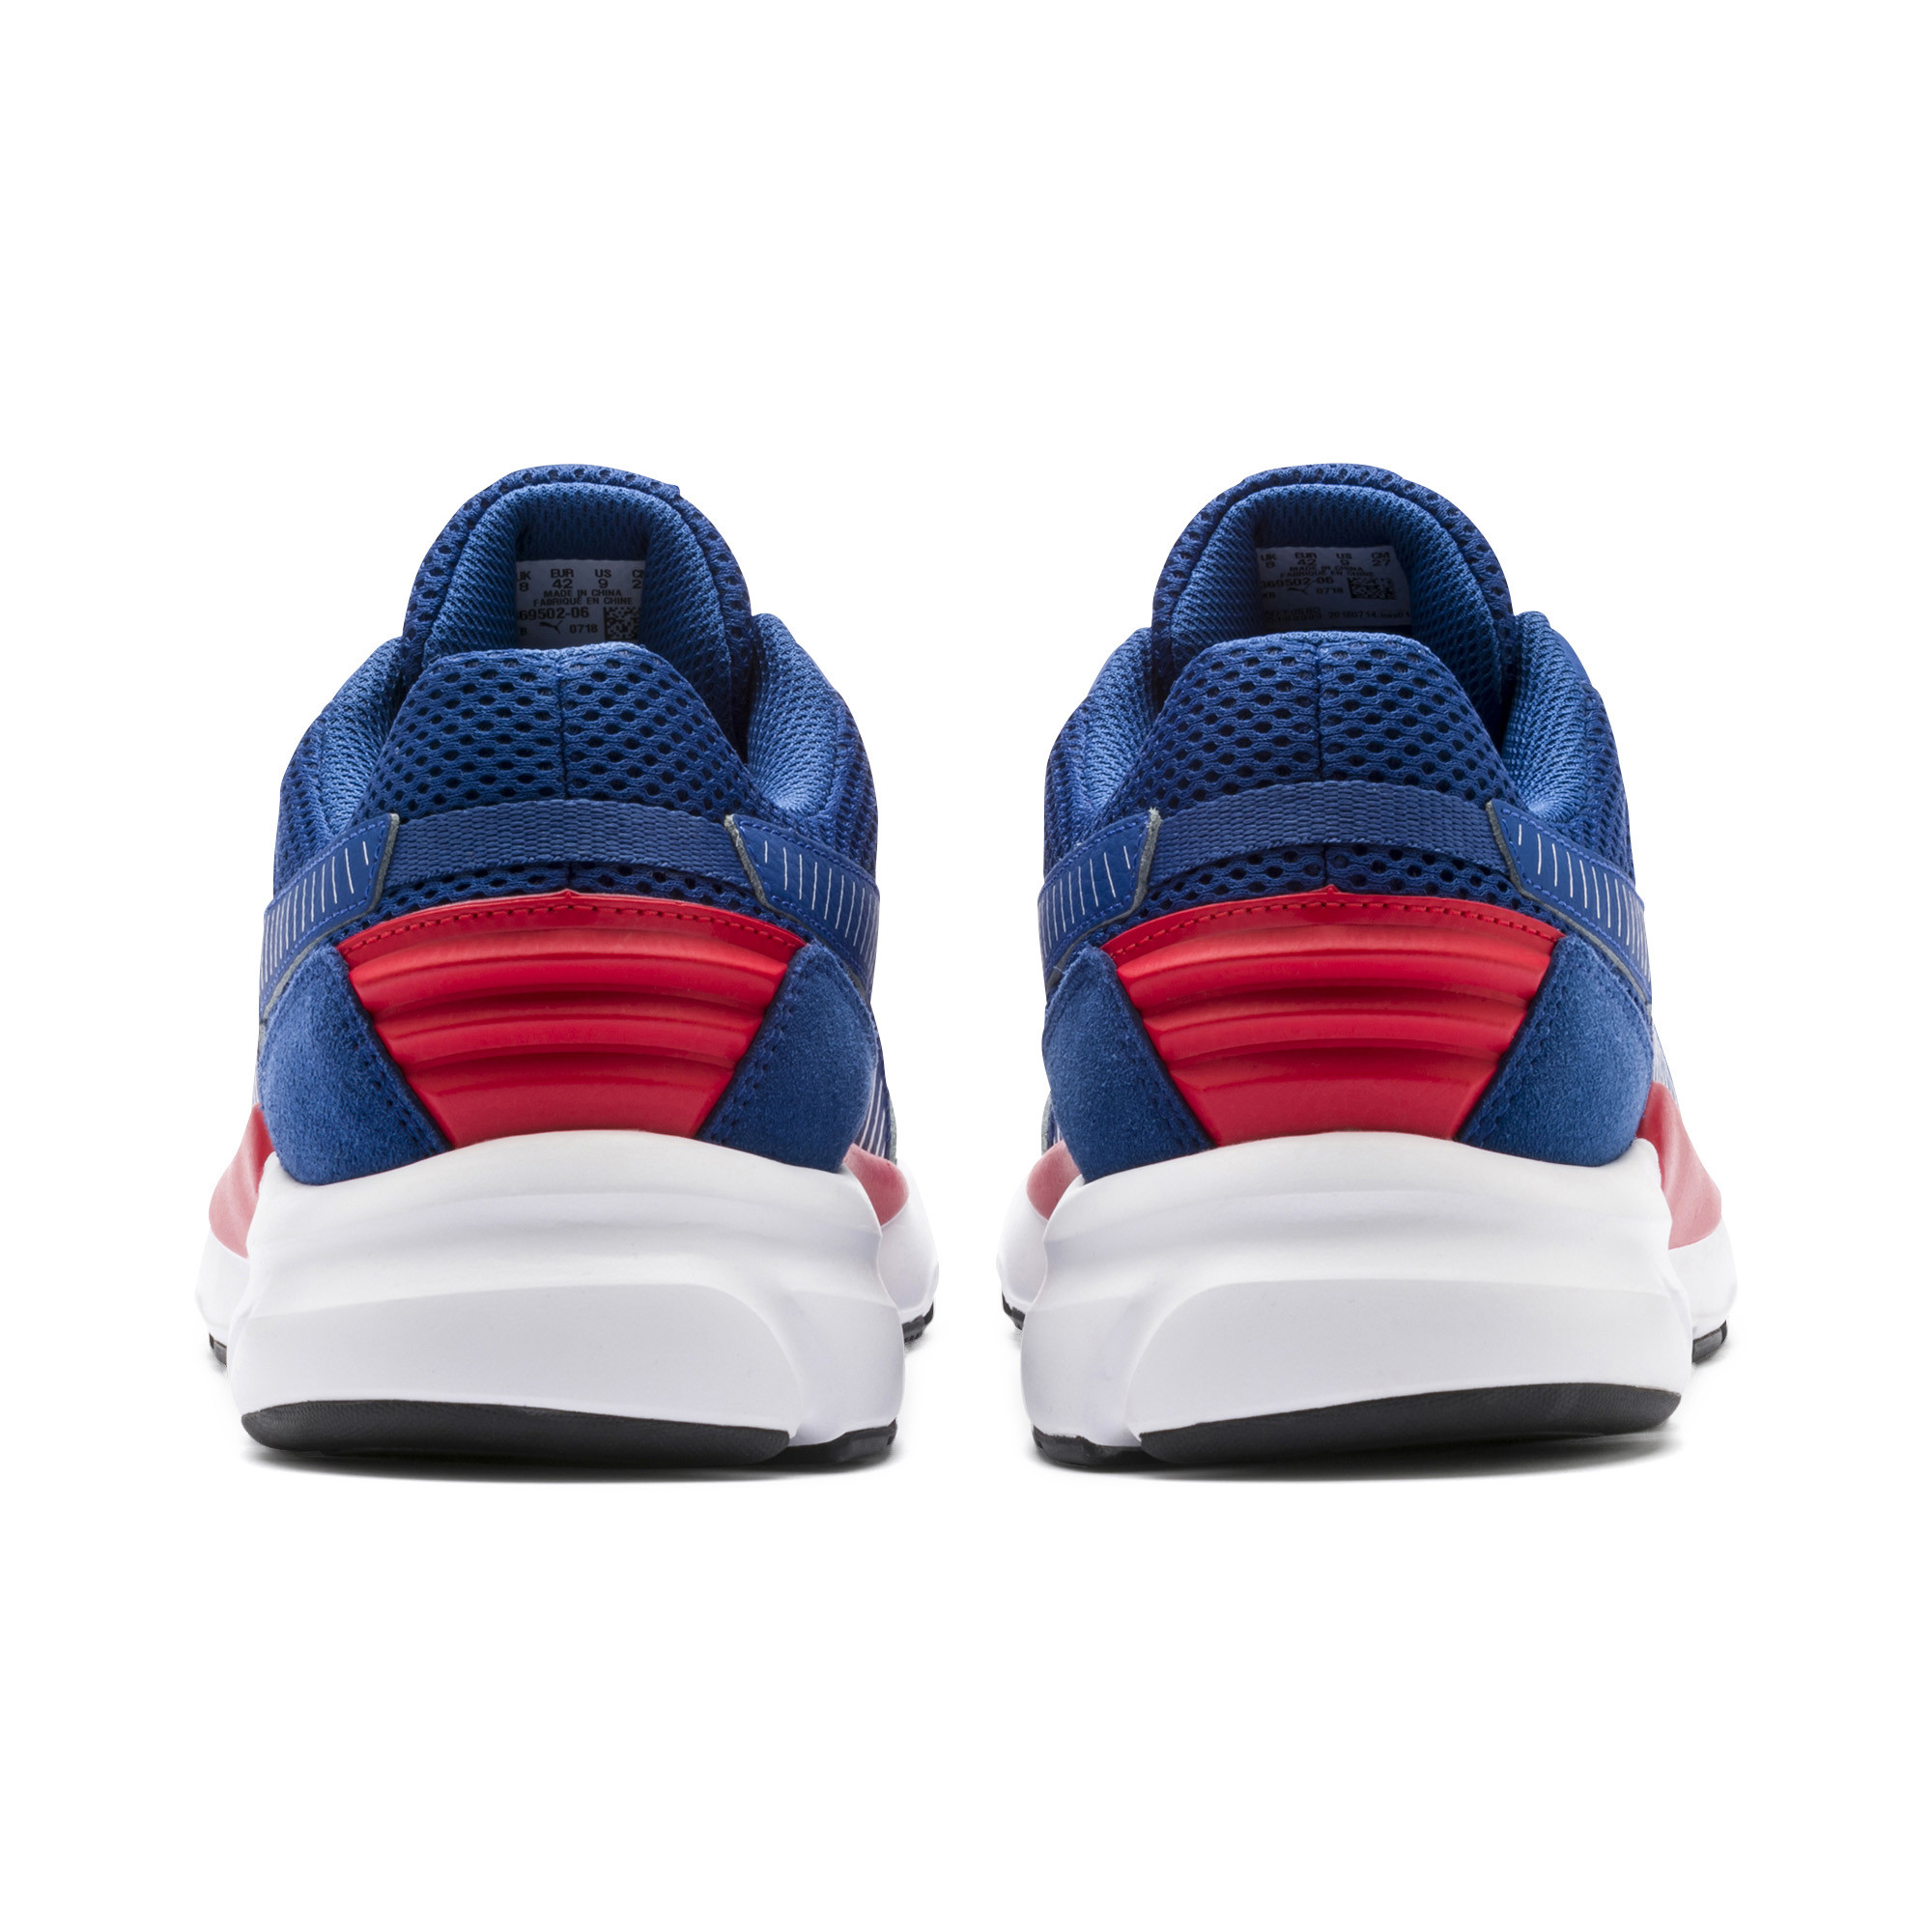 PUMA-Future-Runner-Premium-Men-039-s-Running-Shoes-Men-Shoe-Basics thumbnail 15